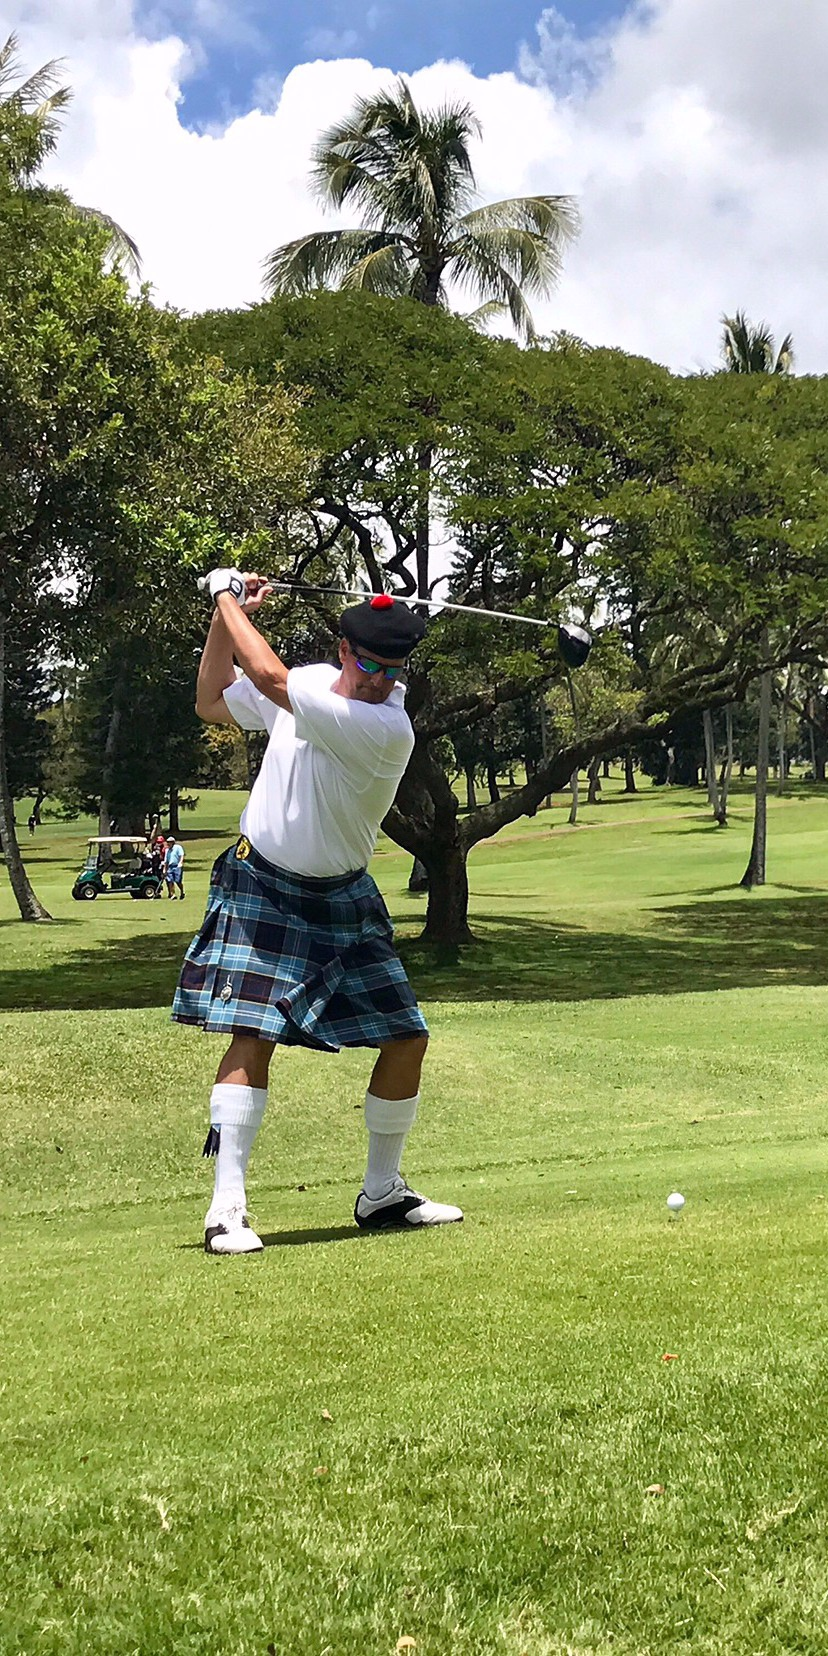 Kilted Classic - The Saint Andrew Society of Hawaii & The Friends of Saint Patrick Annual Blue Shamrock Kilted Classic Golf Tournament is coming up quickly. Openings are available! Online sign-up deadline April 10th!REGISTER HERE